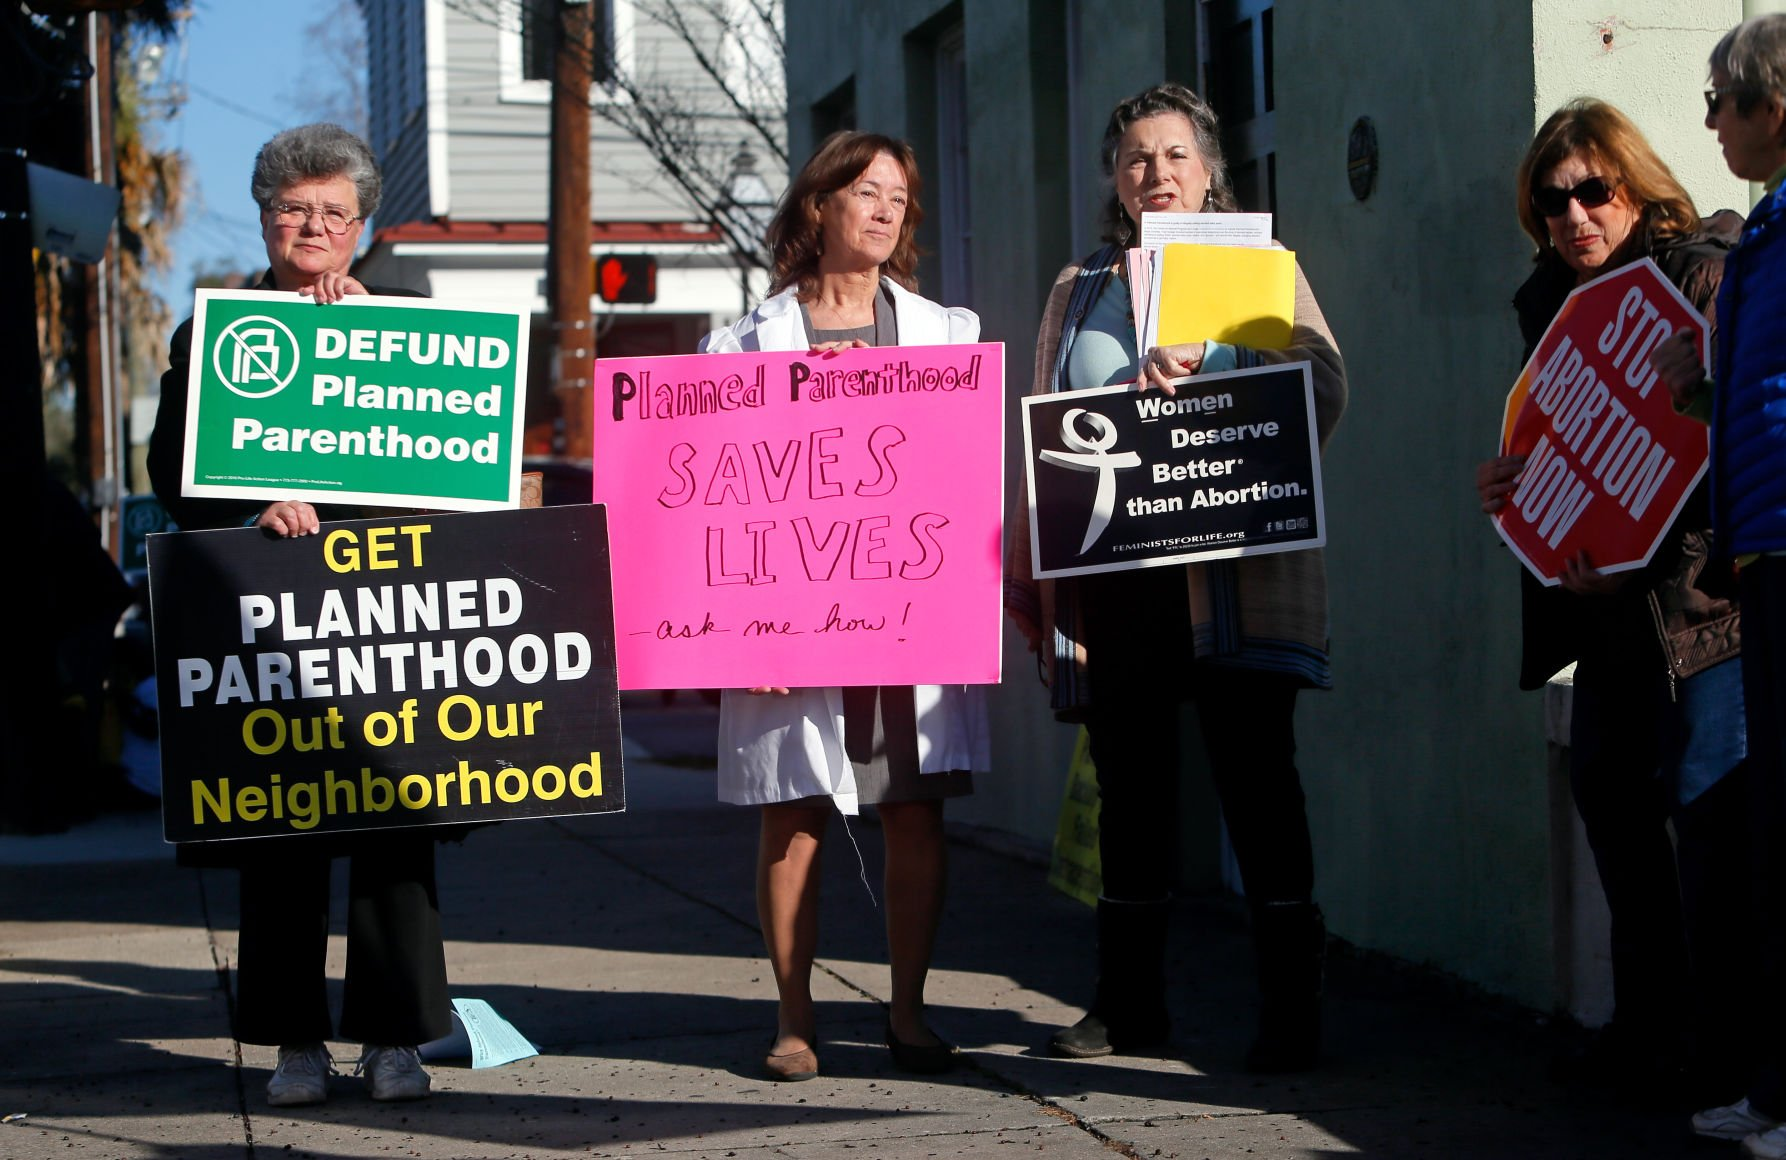 South Carolina Governor Issues Order to Defund Planned Parenthood Abortion Business